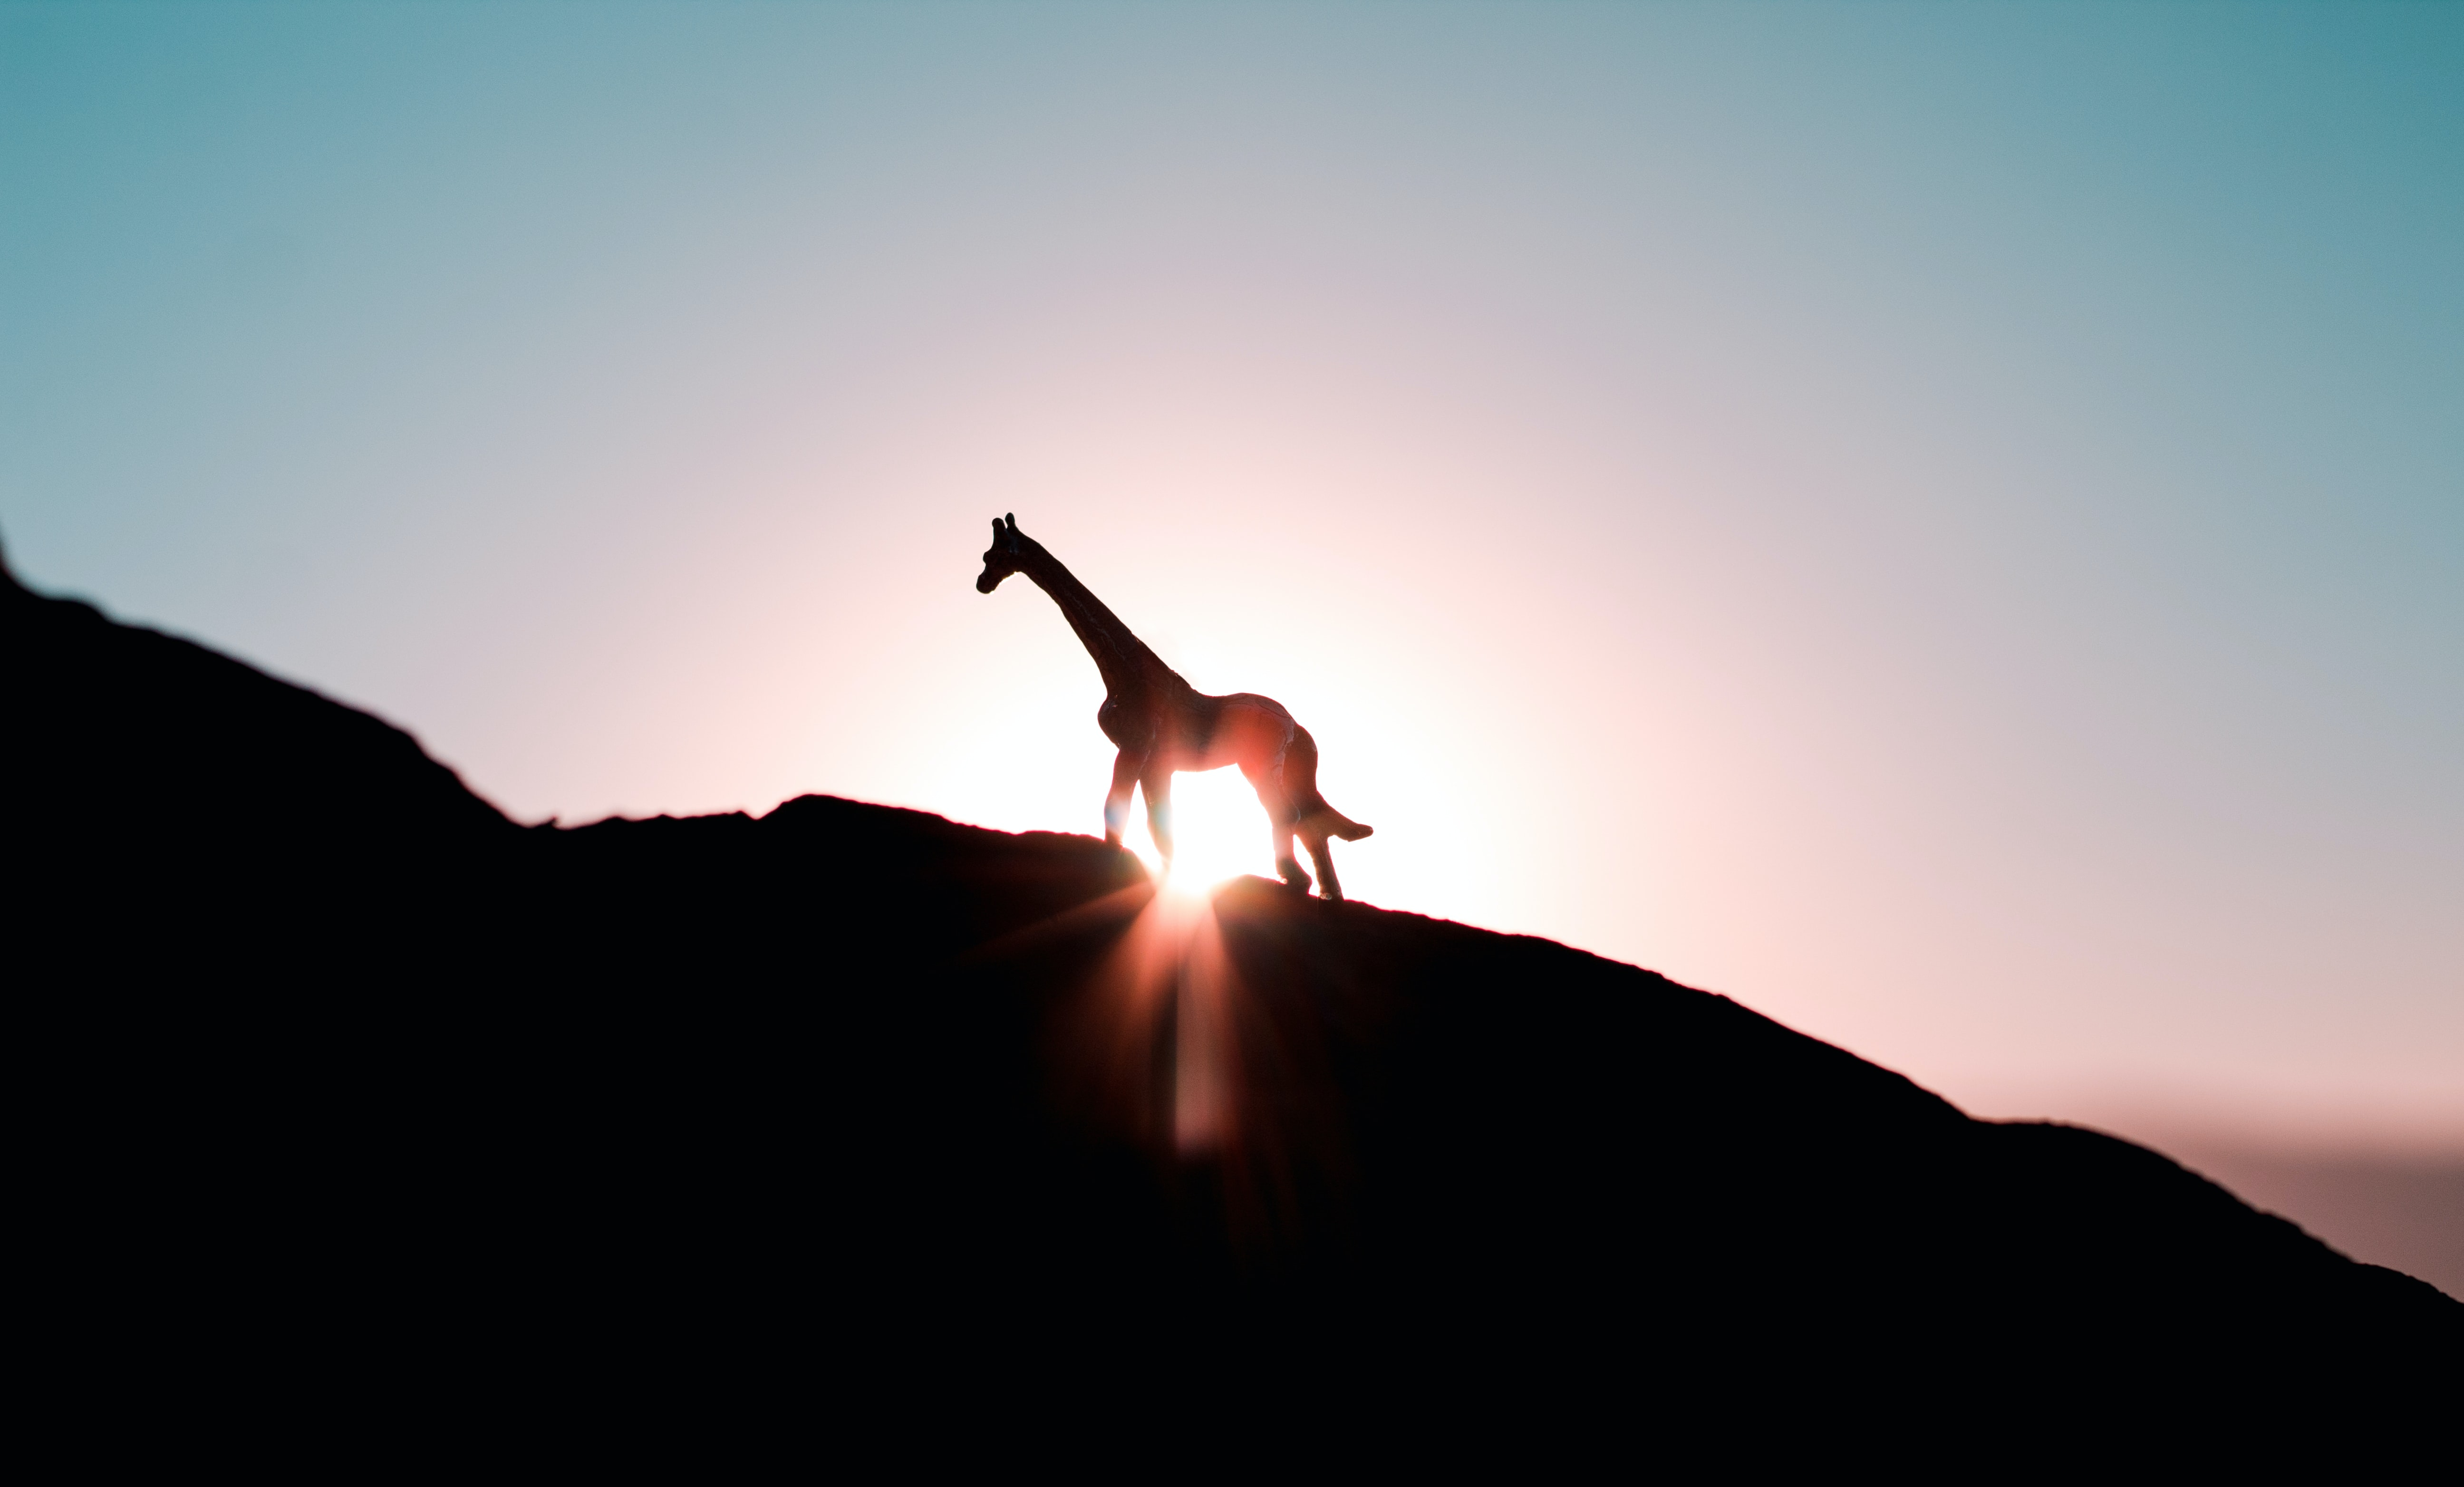 silhouette photo of giraffe during golden hour